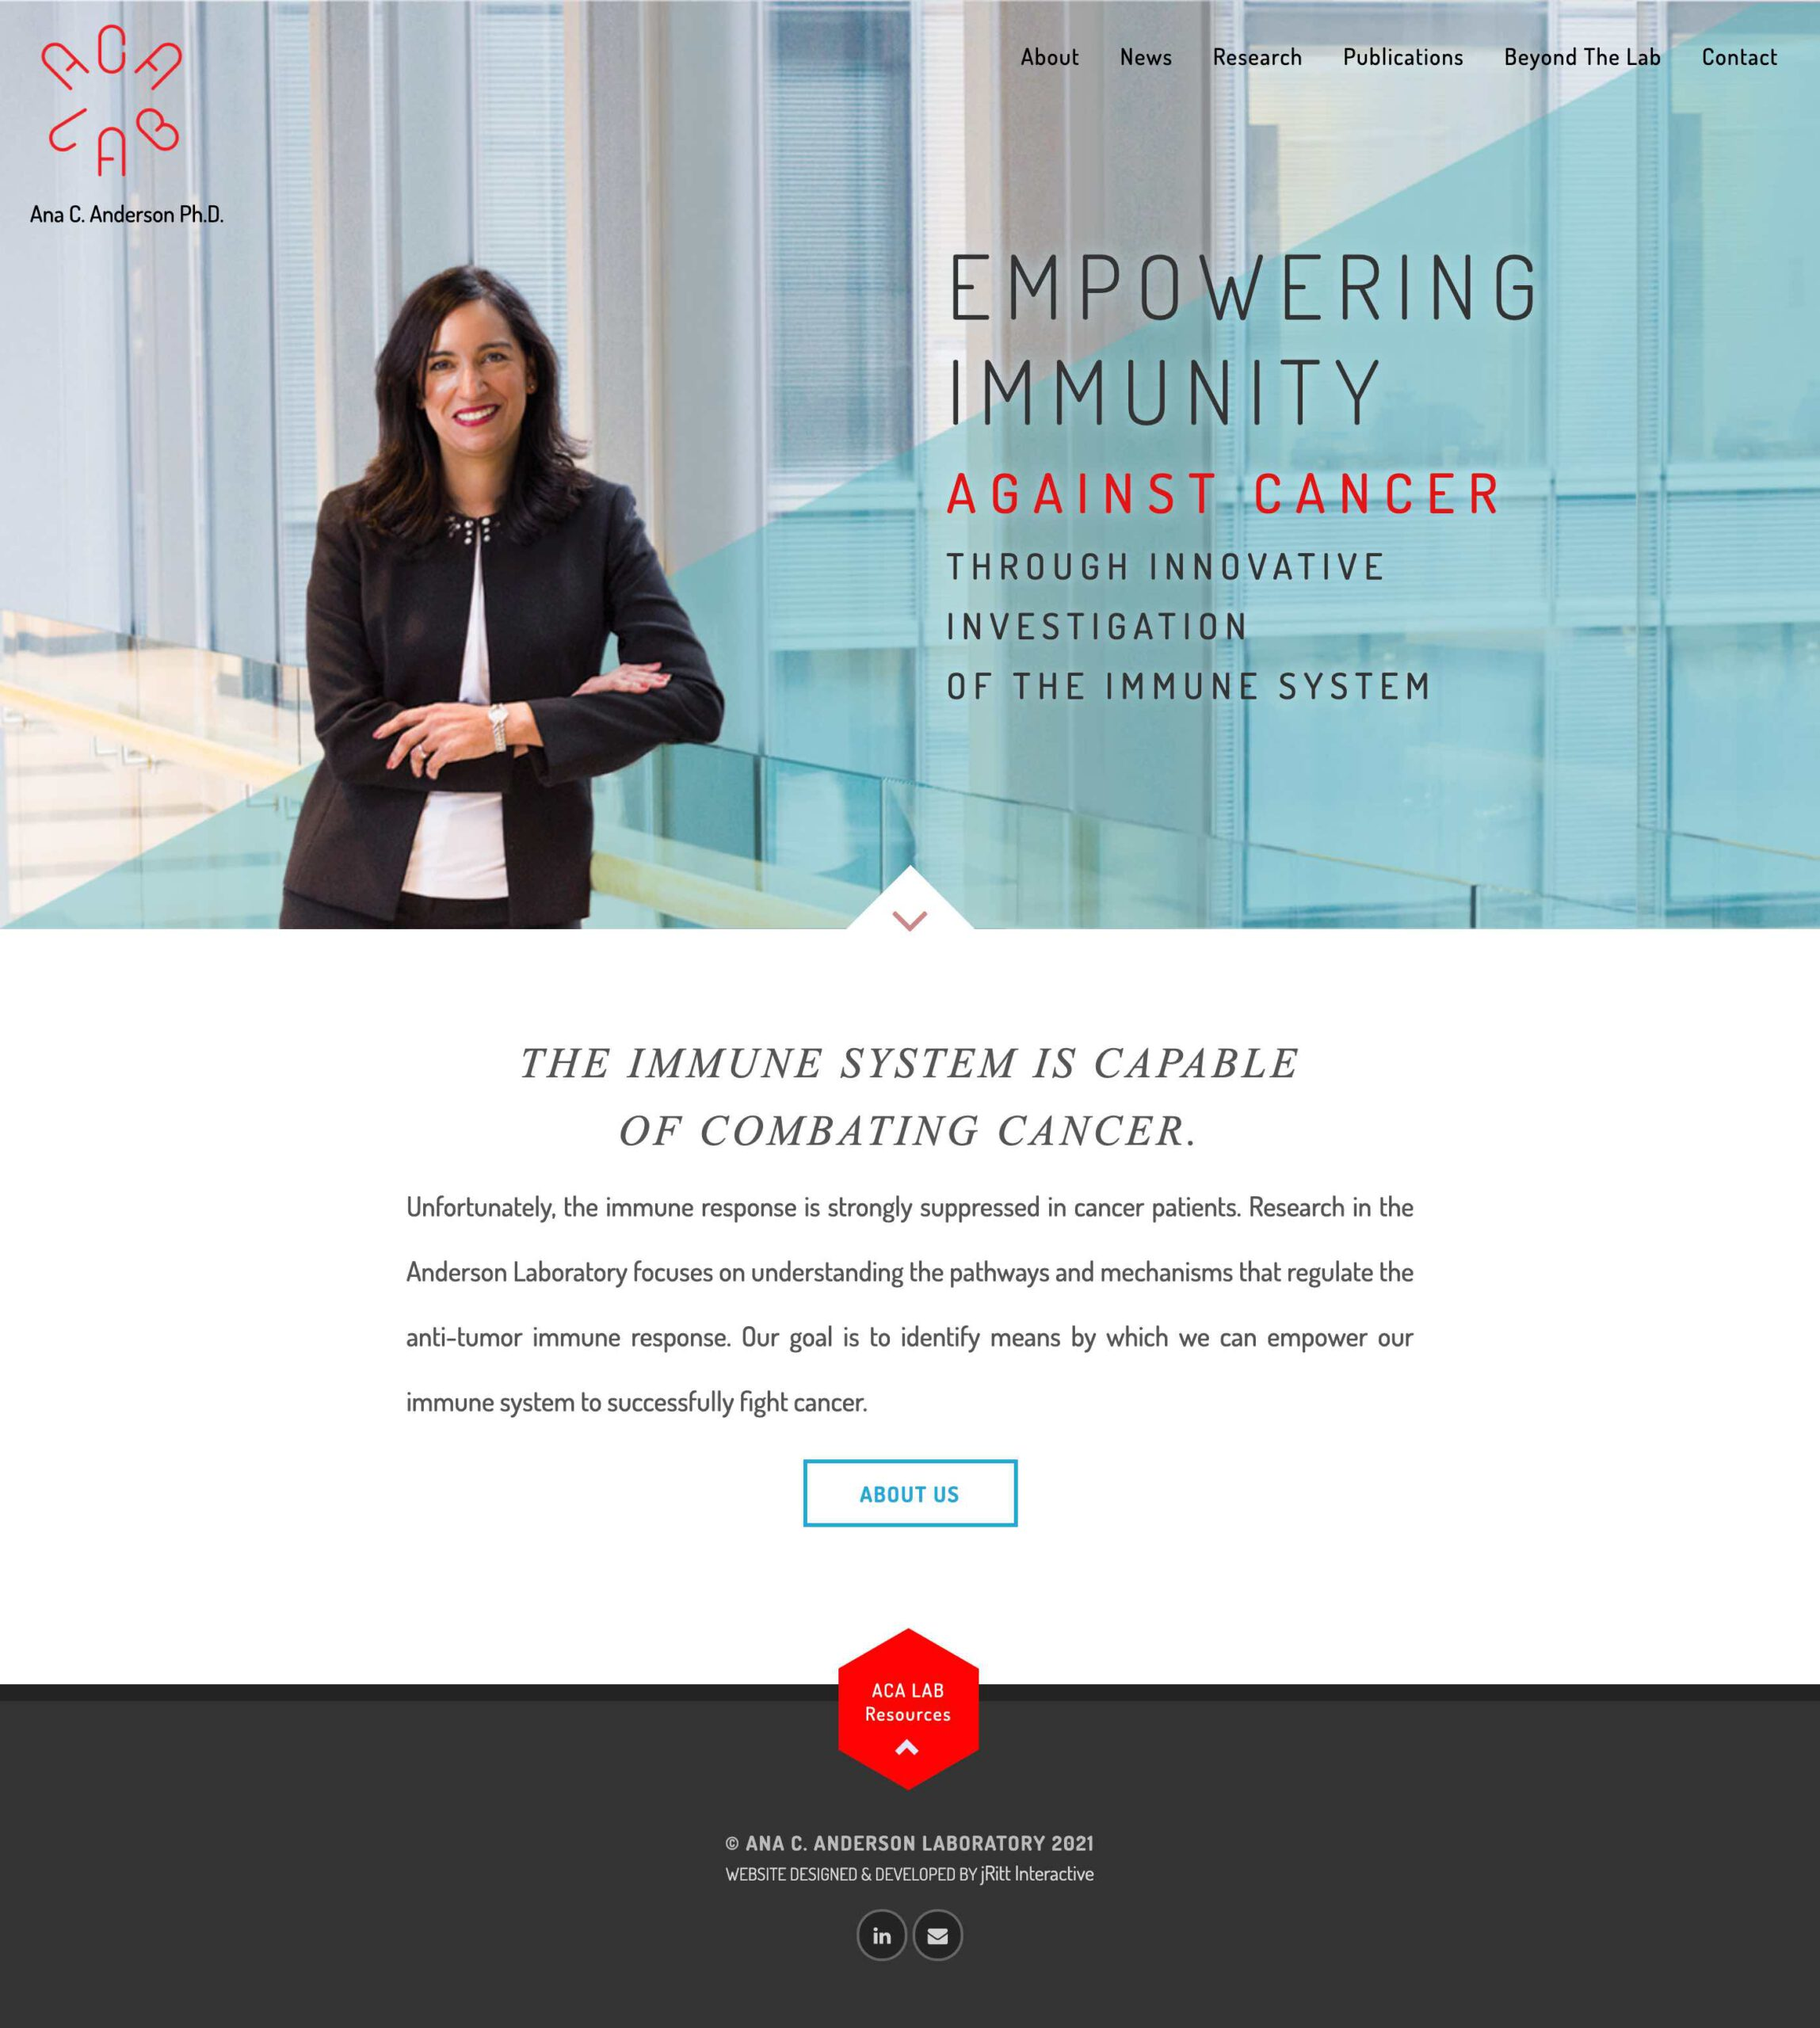 Create a brand identity and website for Dr. Anderson's pioneering cancer research lab